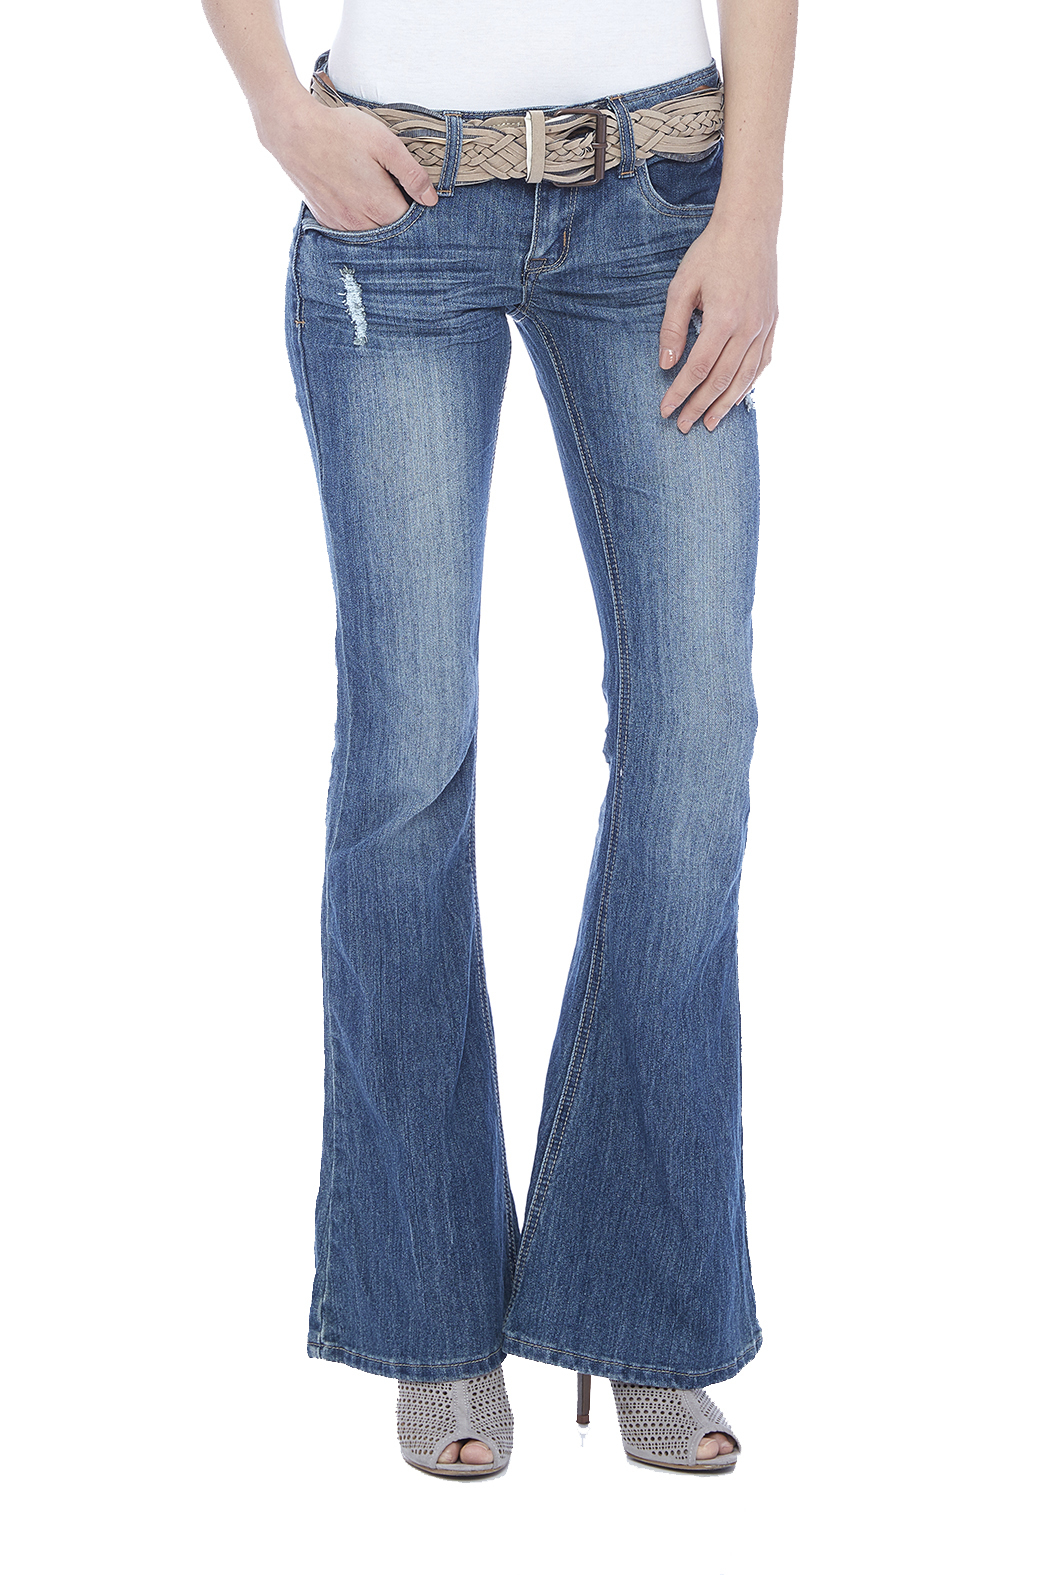 Dollhouse Low Rise Flare Jeans from Idaho by Muse Boutique ...